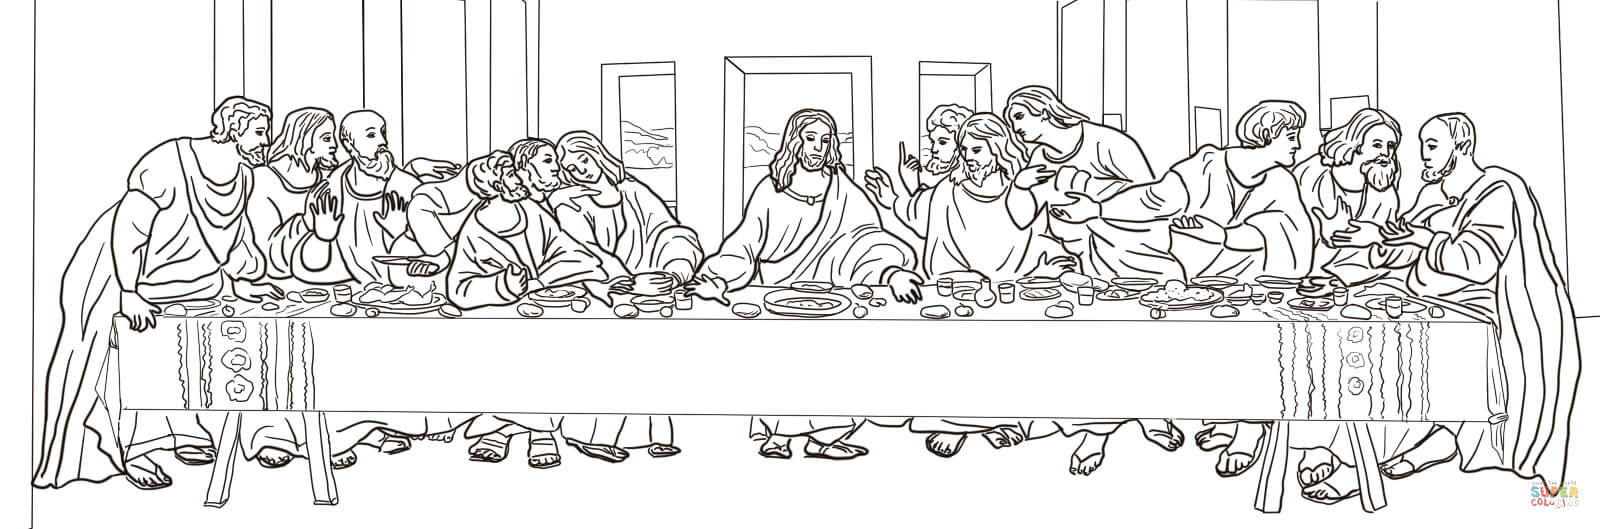 Last Supper Coloring Pages Printable  The Last Supper by Leonardo da Vinci coloring page